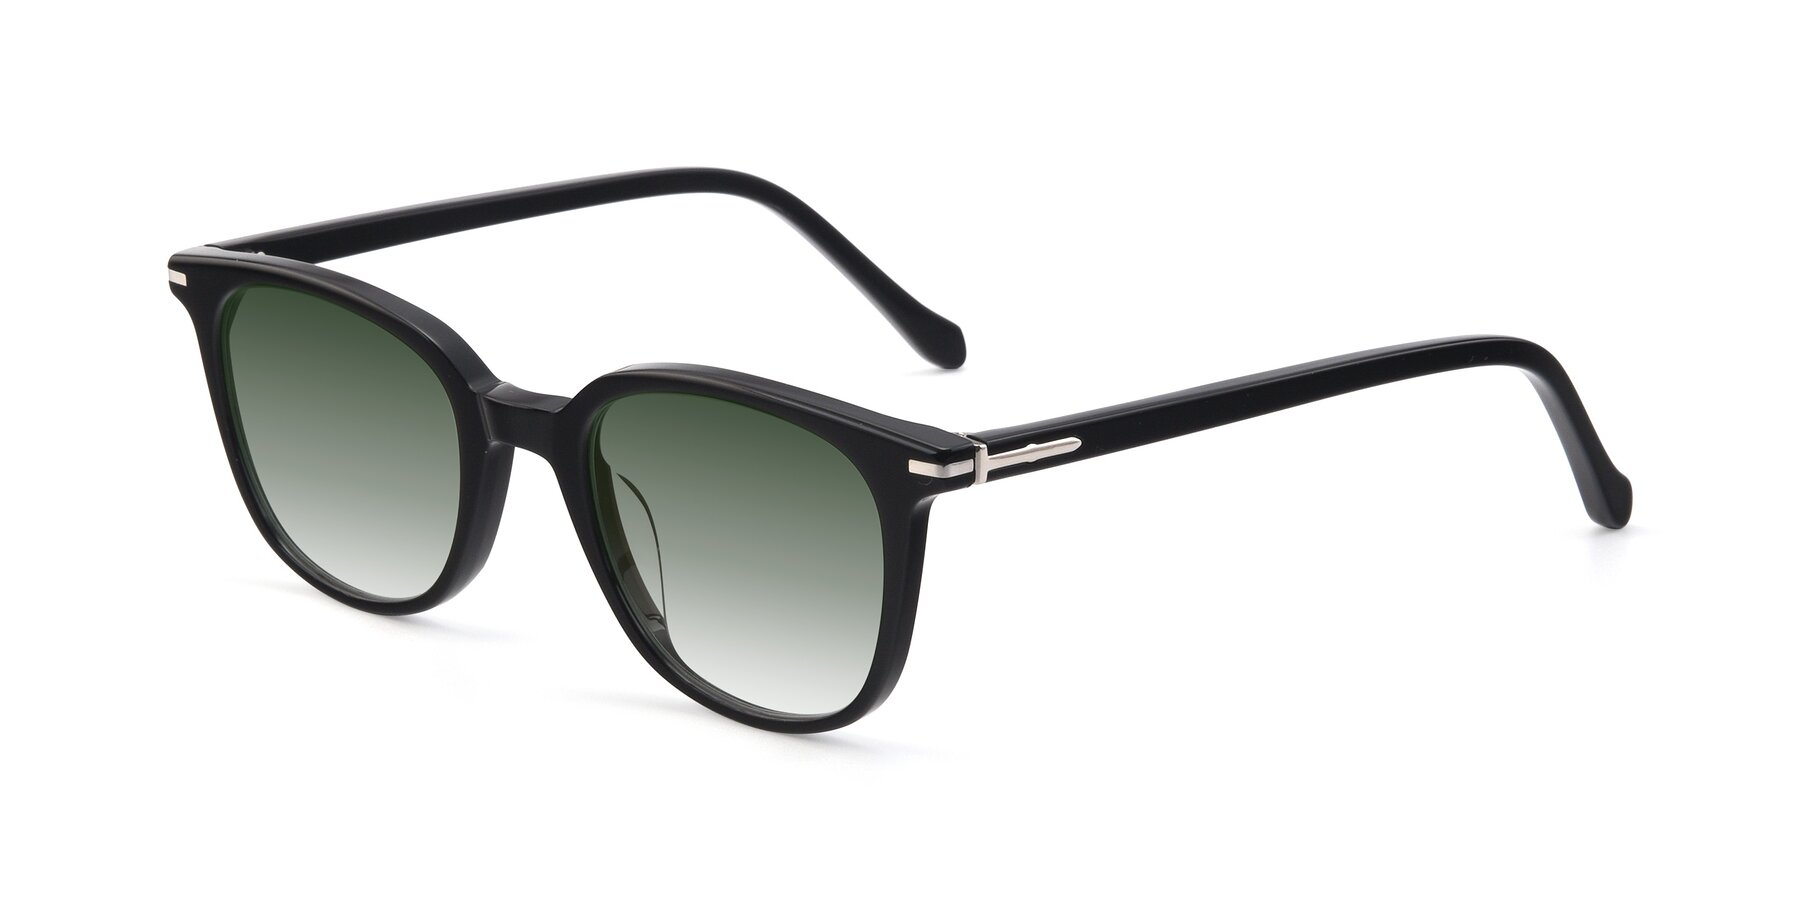 Angle of 17562 in Black with Green Gradient Lenses